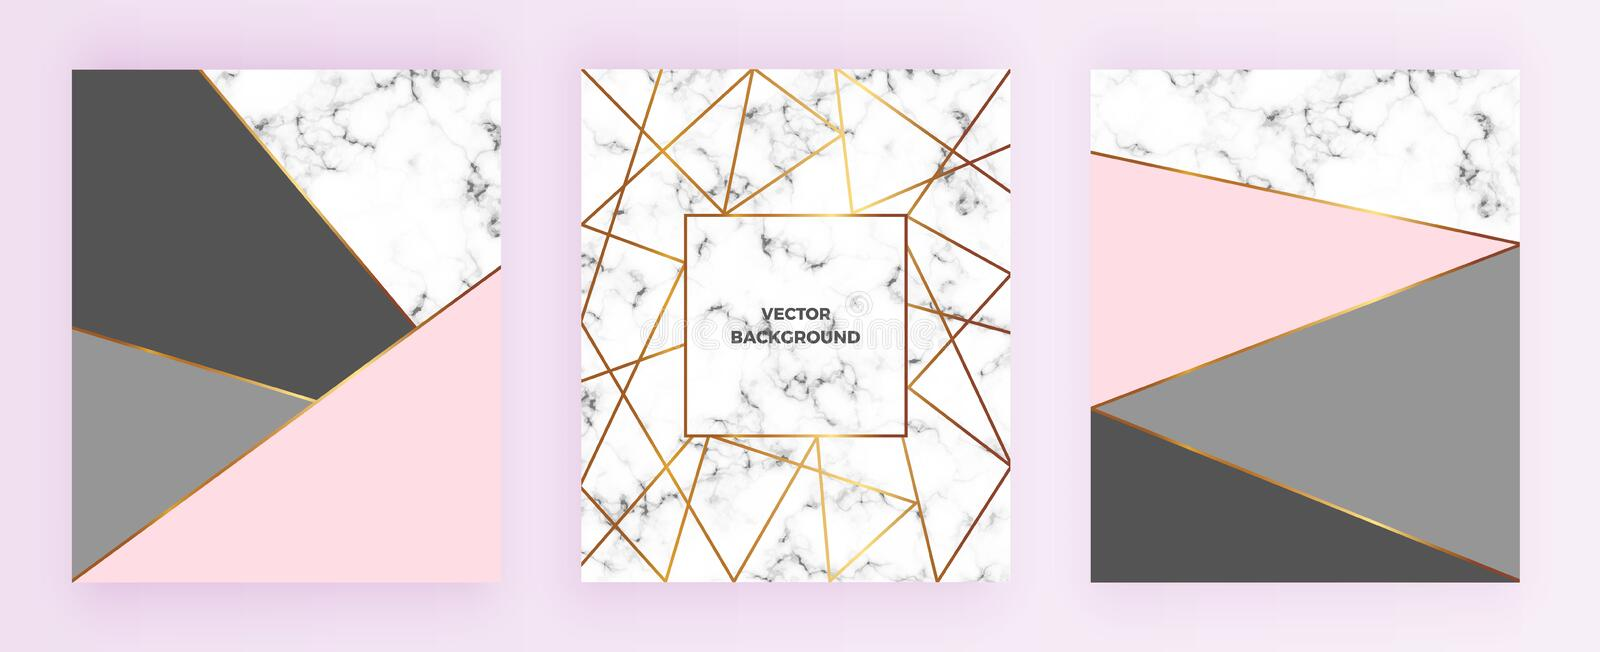 Set geometric designs posters with gold line, grey, pastel pink colors and marble texture background. Template for invitation, ca. Rd, design, banner, wedding vector illustration